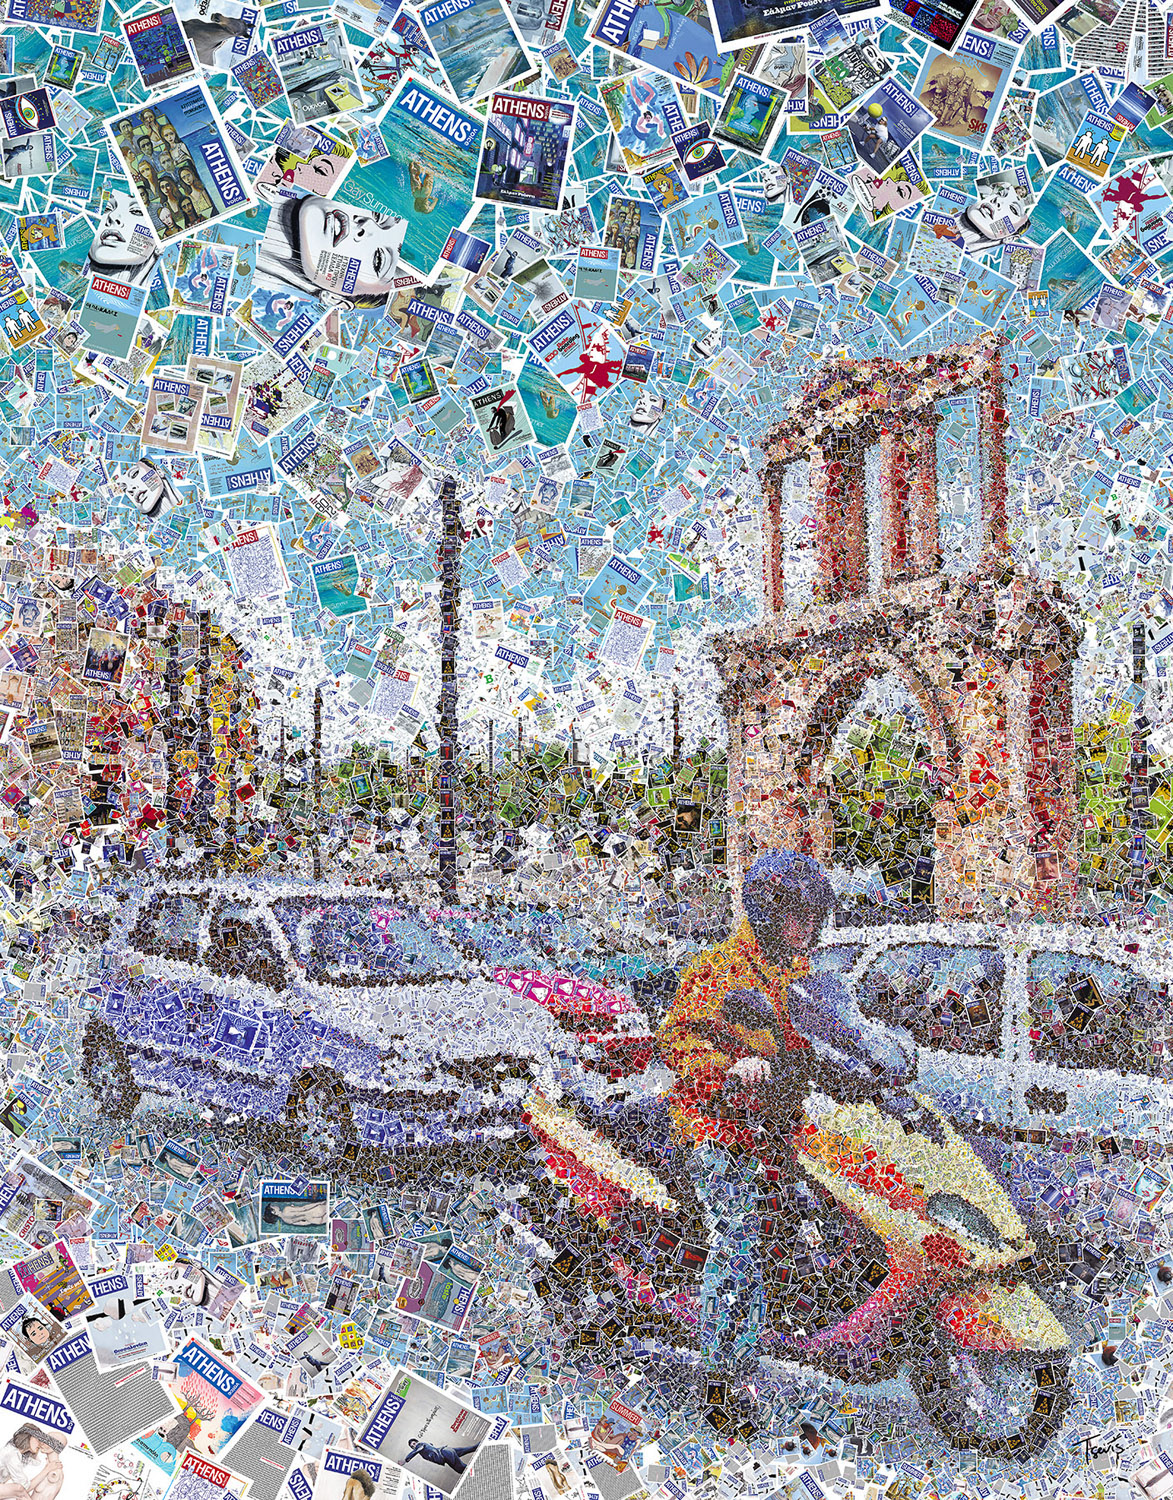 A mosaic illustration of a typical traffic moment in one of the main streets of downtown Athens, featuring the Hadrian's Gate. Created for the cover of Athens Voice, the most popular free press newspaper of the Greek capital.